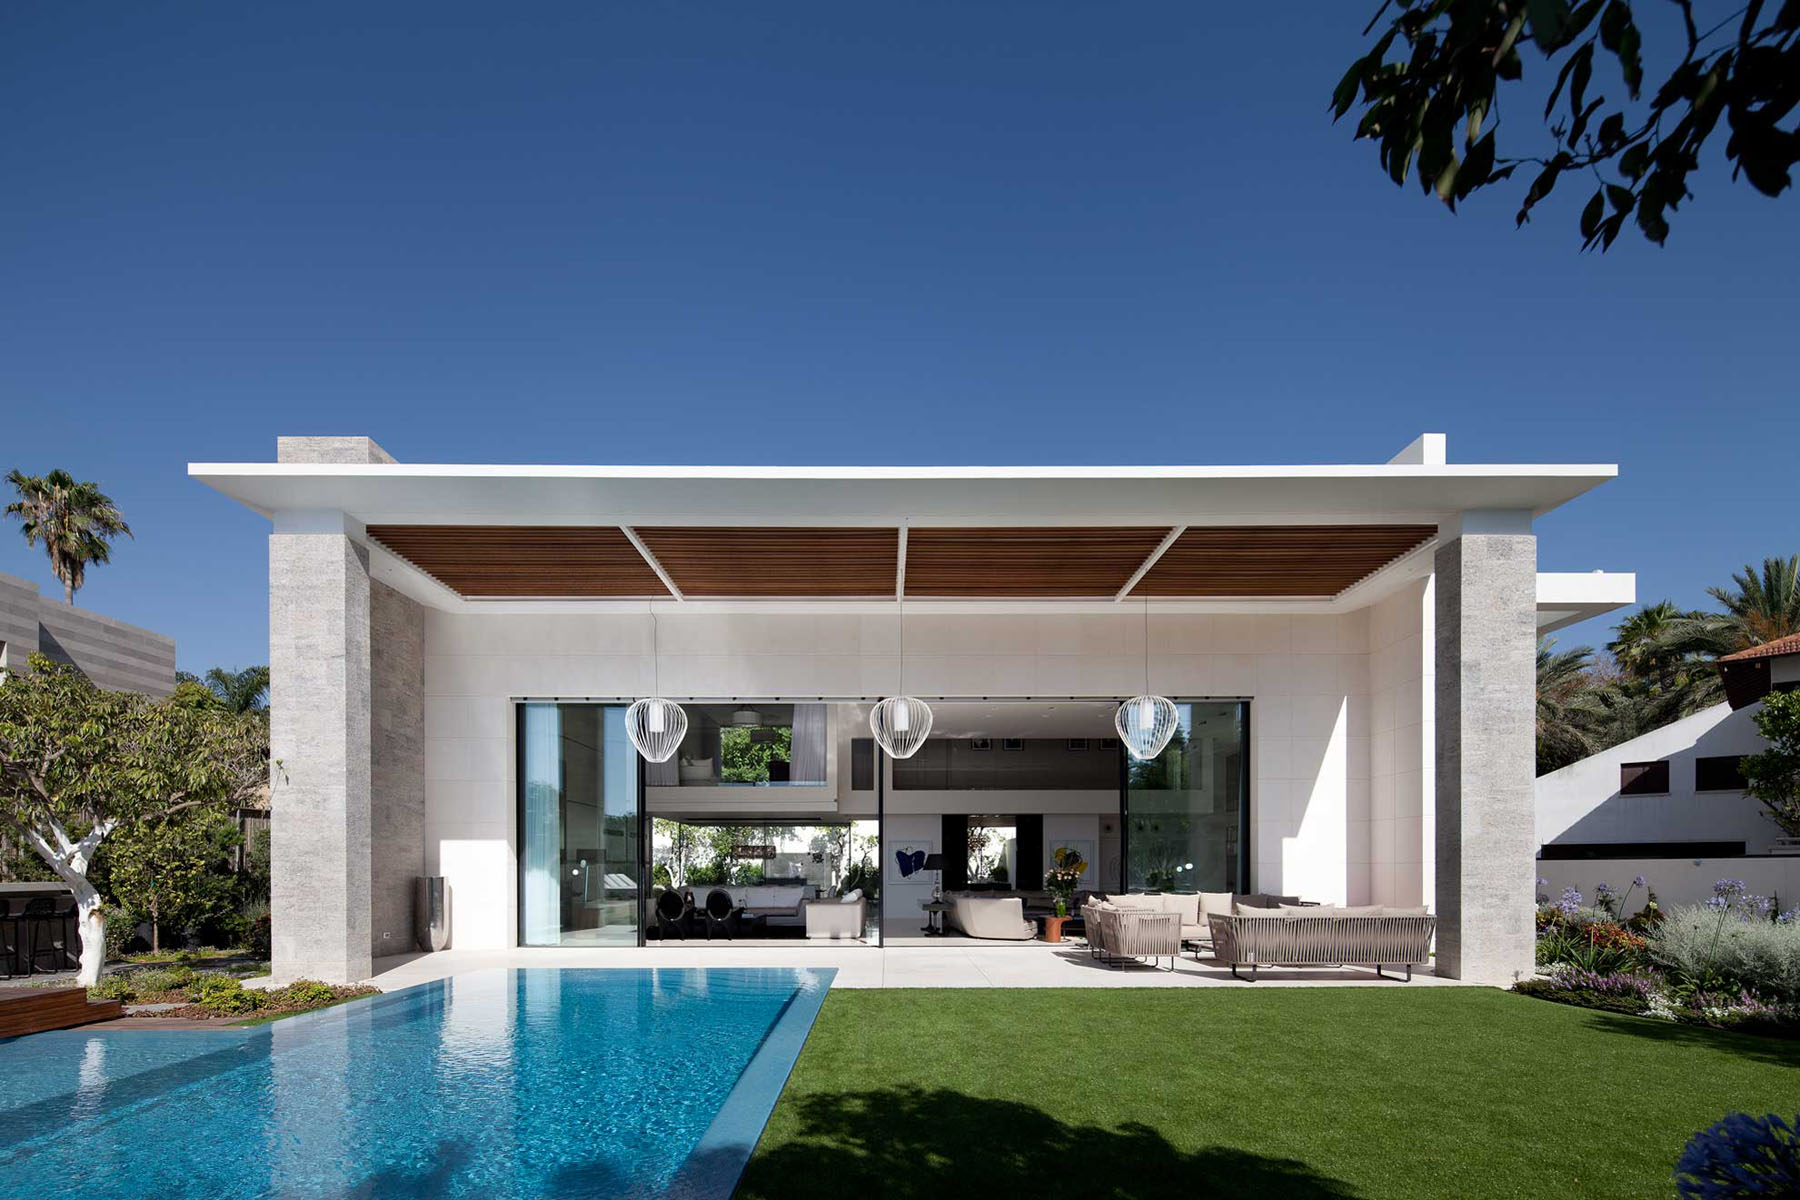 Architecture Houses Design. Luxury Minimalist House Architectural Firm  Yulie Wollman Designed Architecture Houses Design E